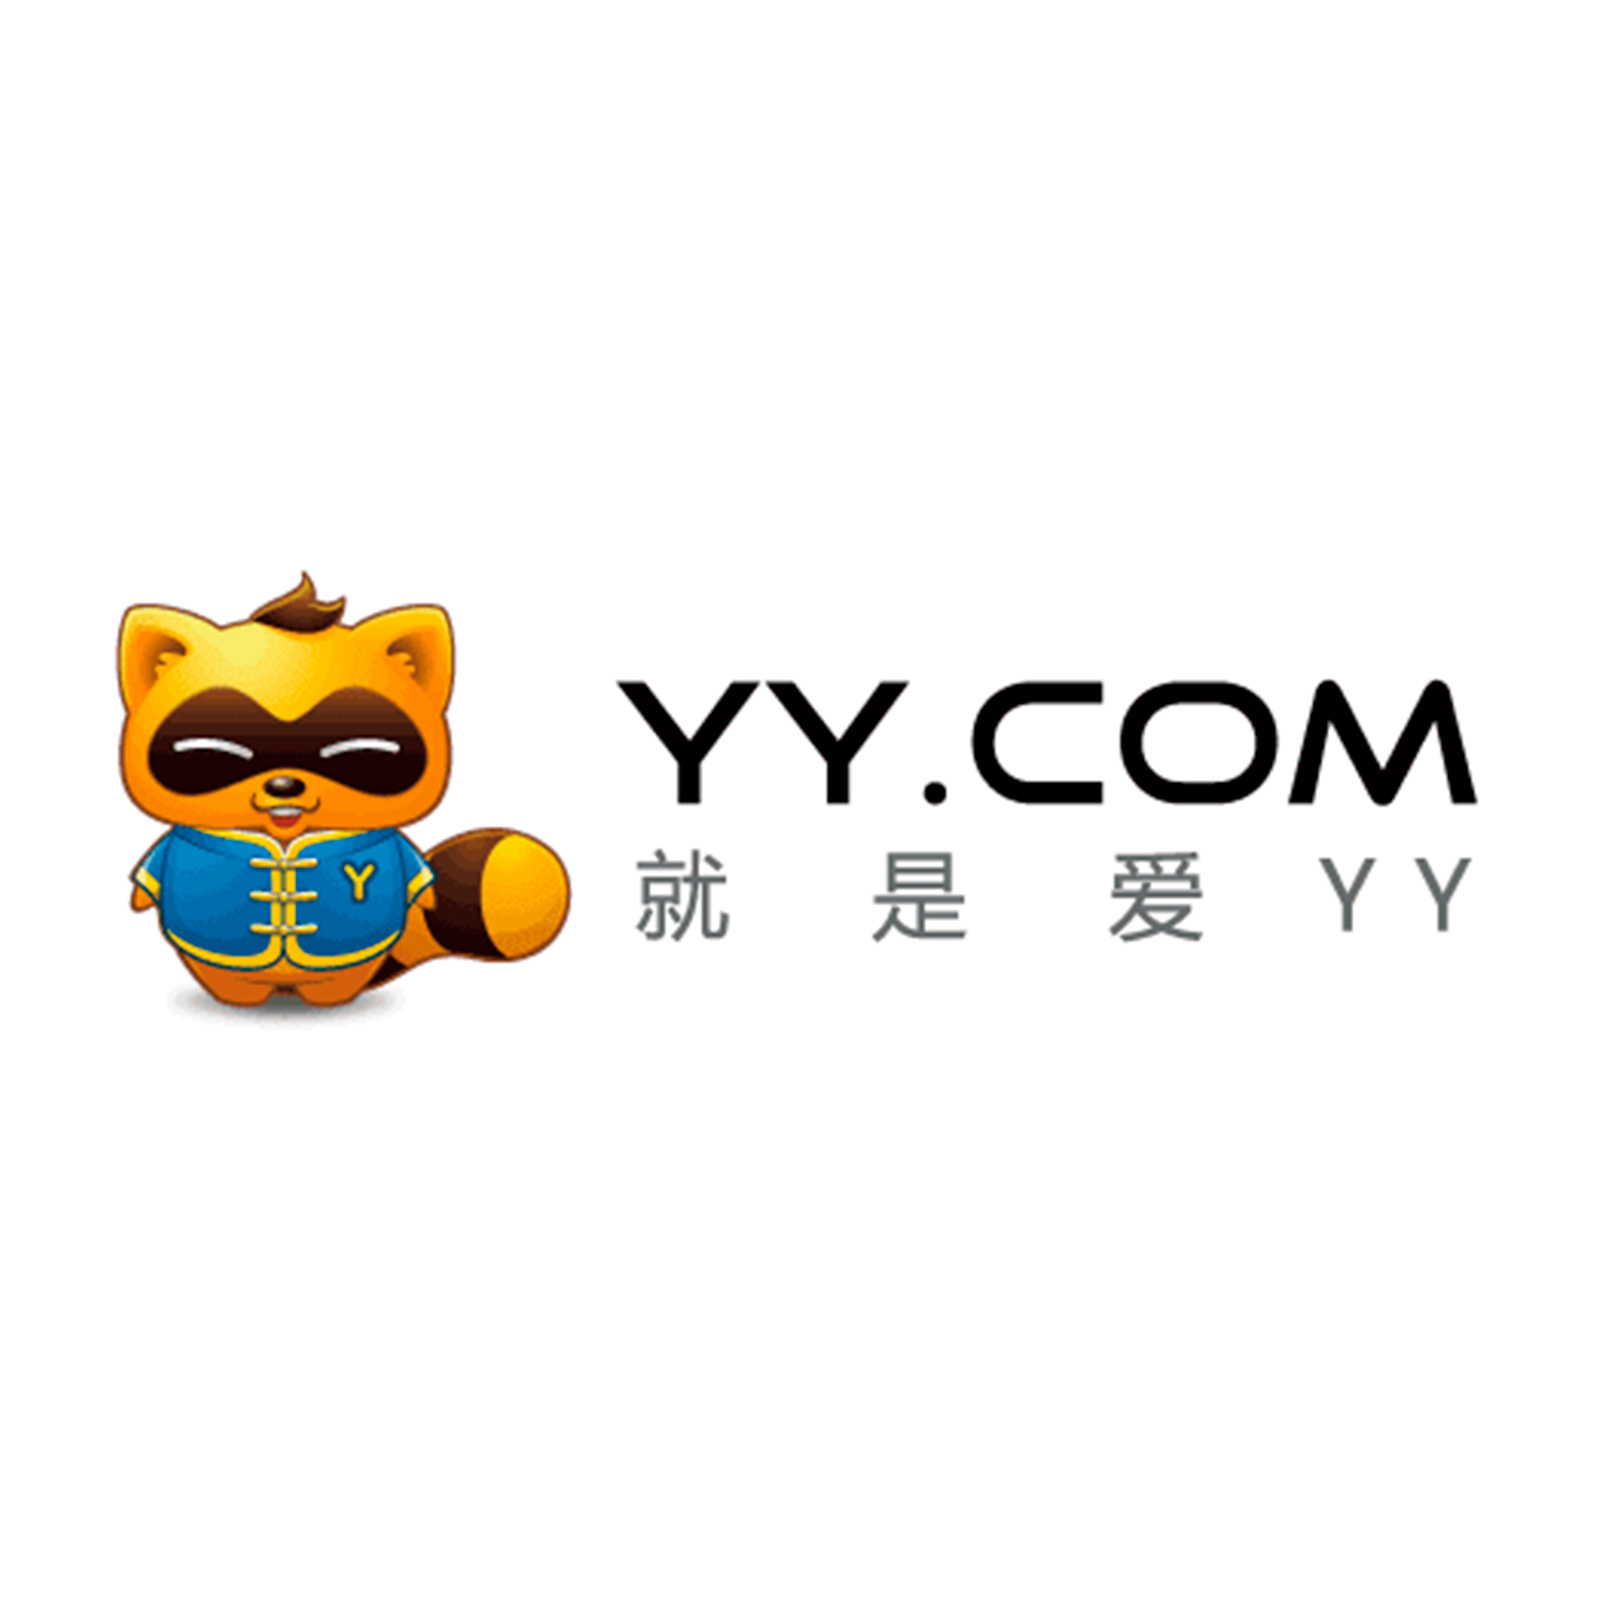 YY is a major video-based social networking platform in China that enables group video chats. In such chats, more than 100,000 members can watch a single person doing an activity. Such an activity can be anything from giving a tutorial video to singing karaoke, which helps the users earn virtual currency that they can later convert into cash.